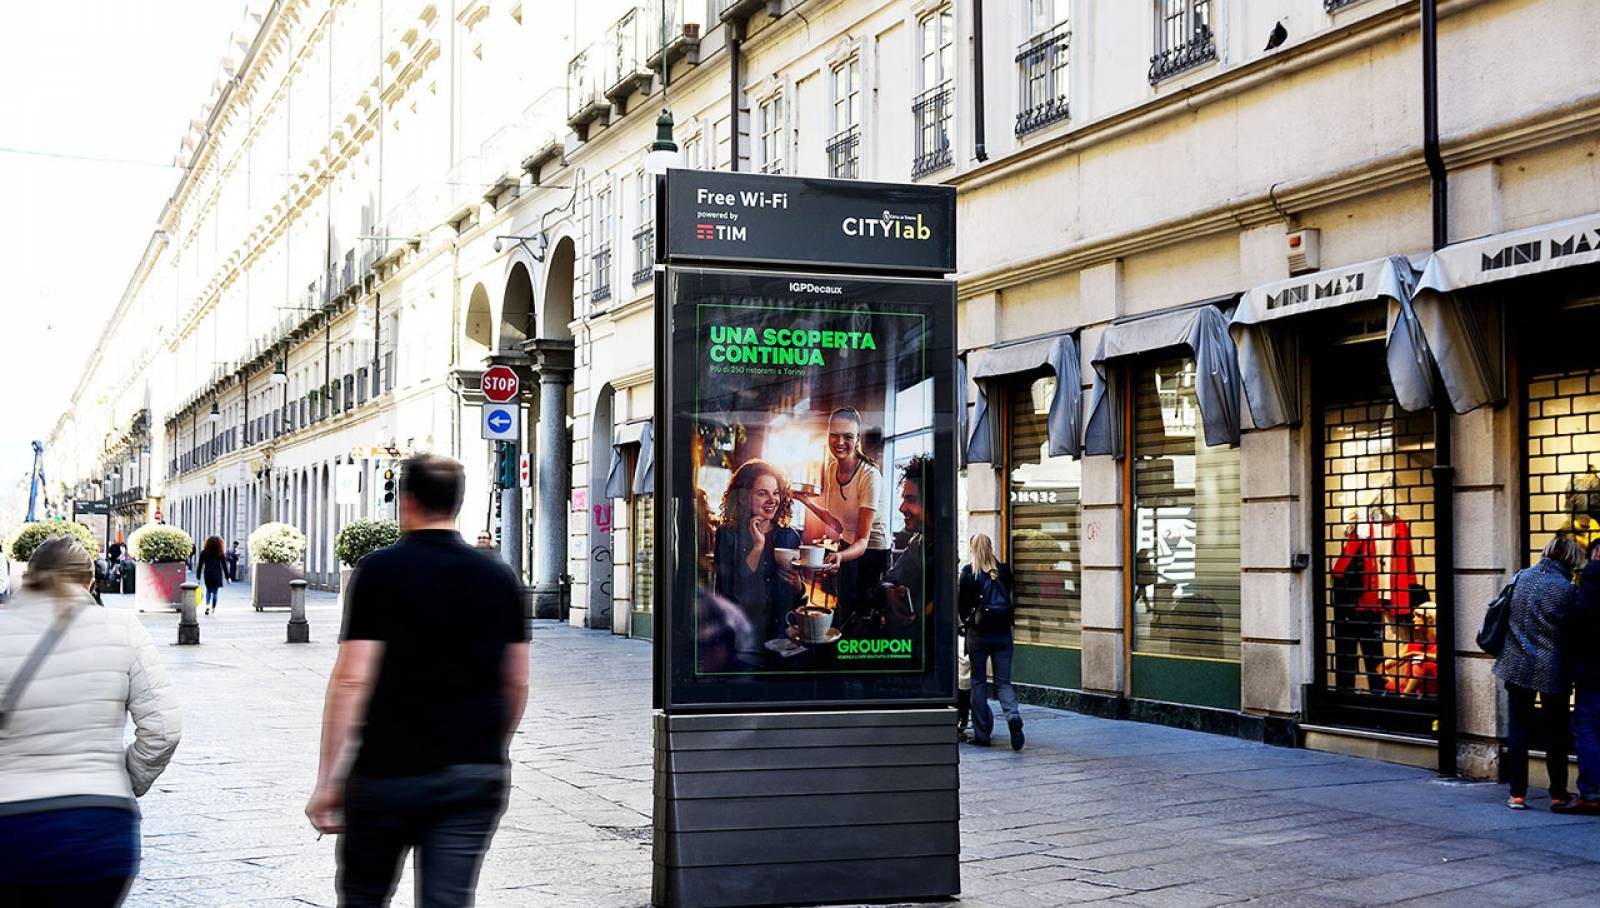 IGPDecaux out of home advertising MUPI per Groupon a Torino